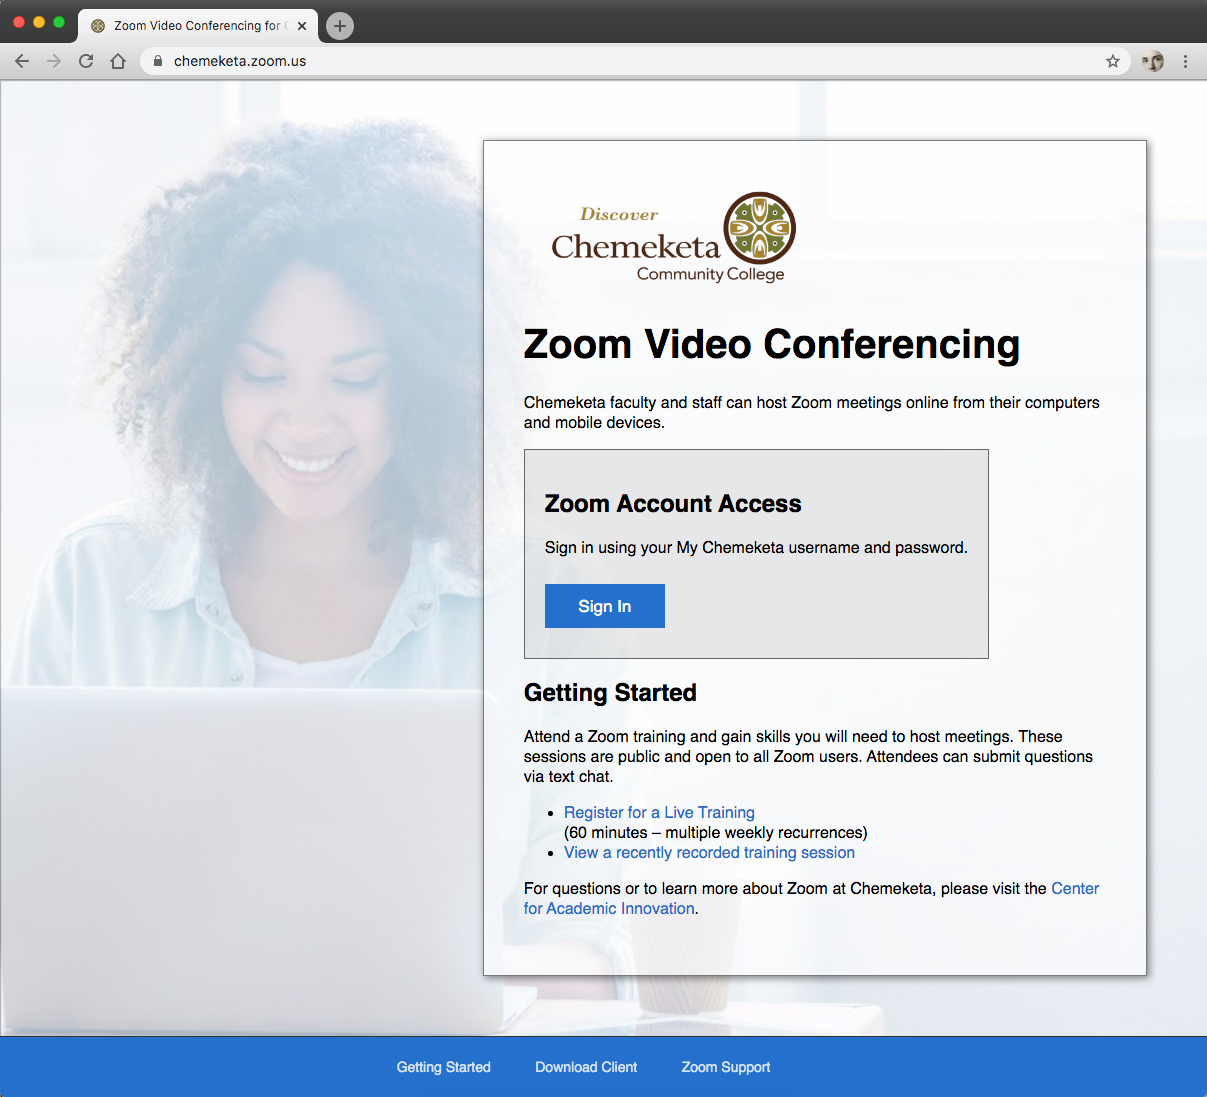 Screenshot showing the Chemeketa Zoom website